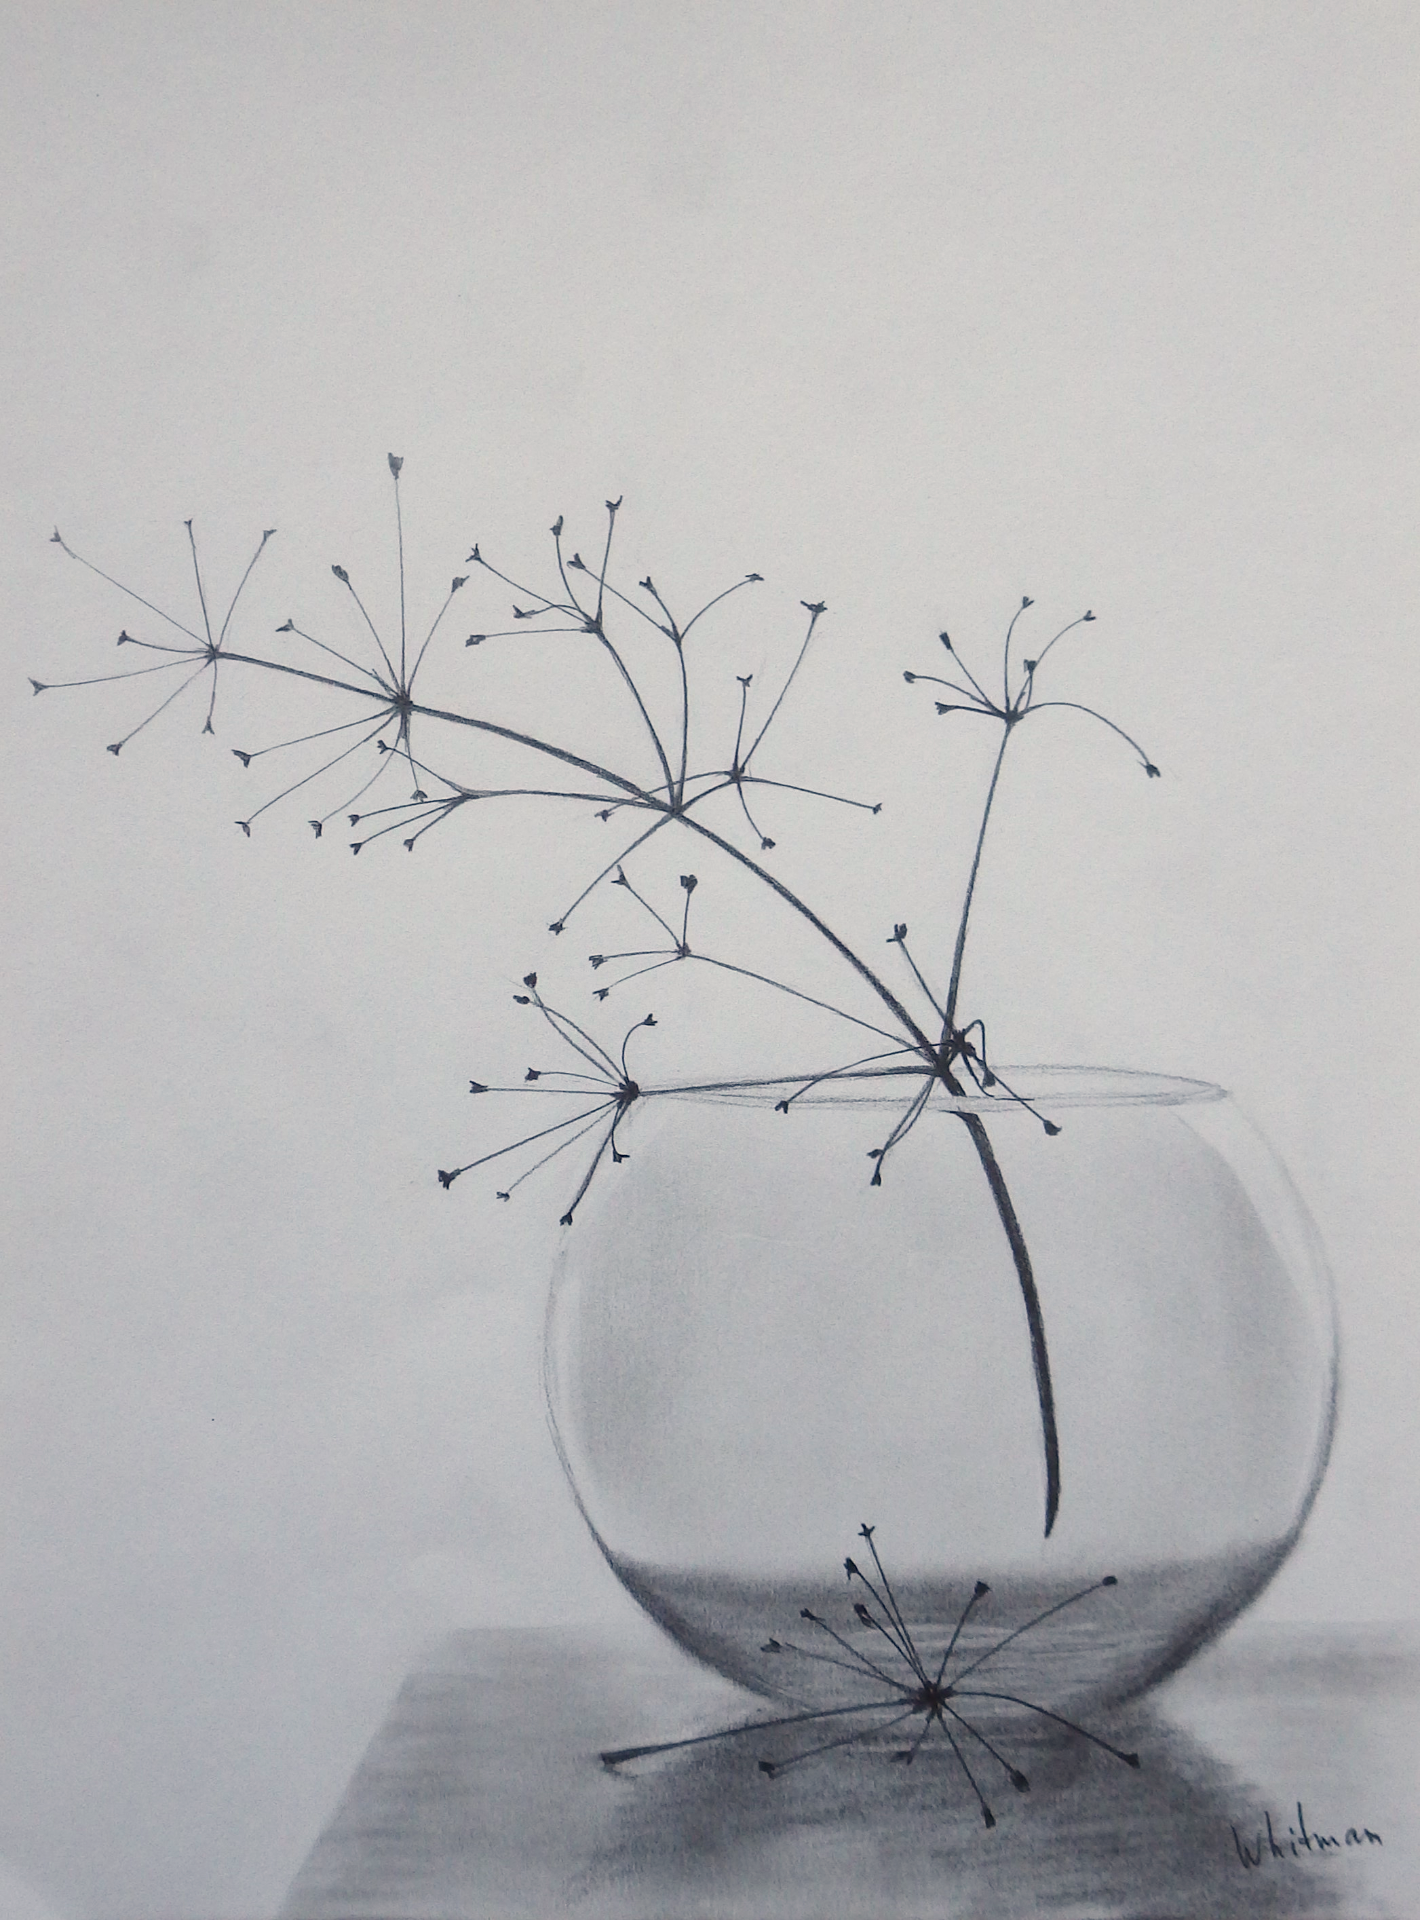 Round glass vase with dry umbelliferae flowers. Pencil